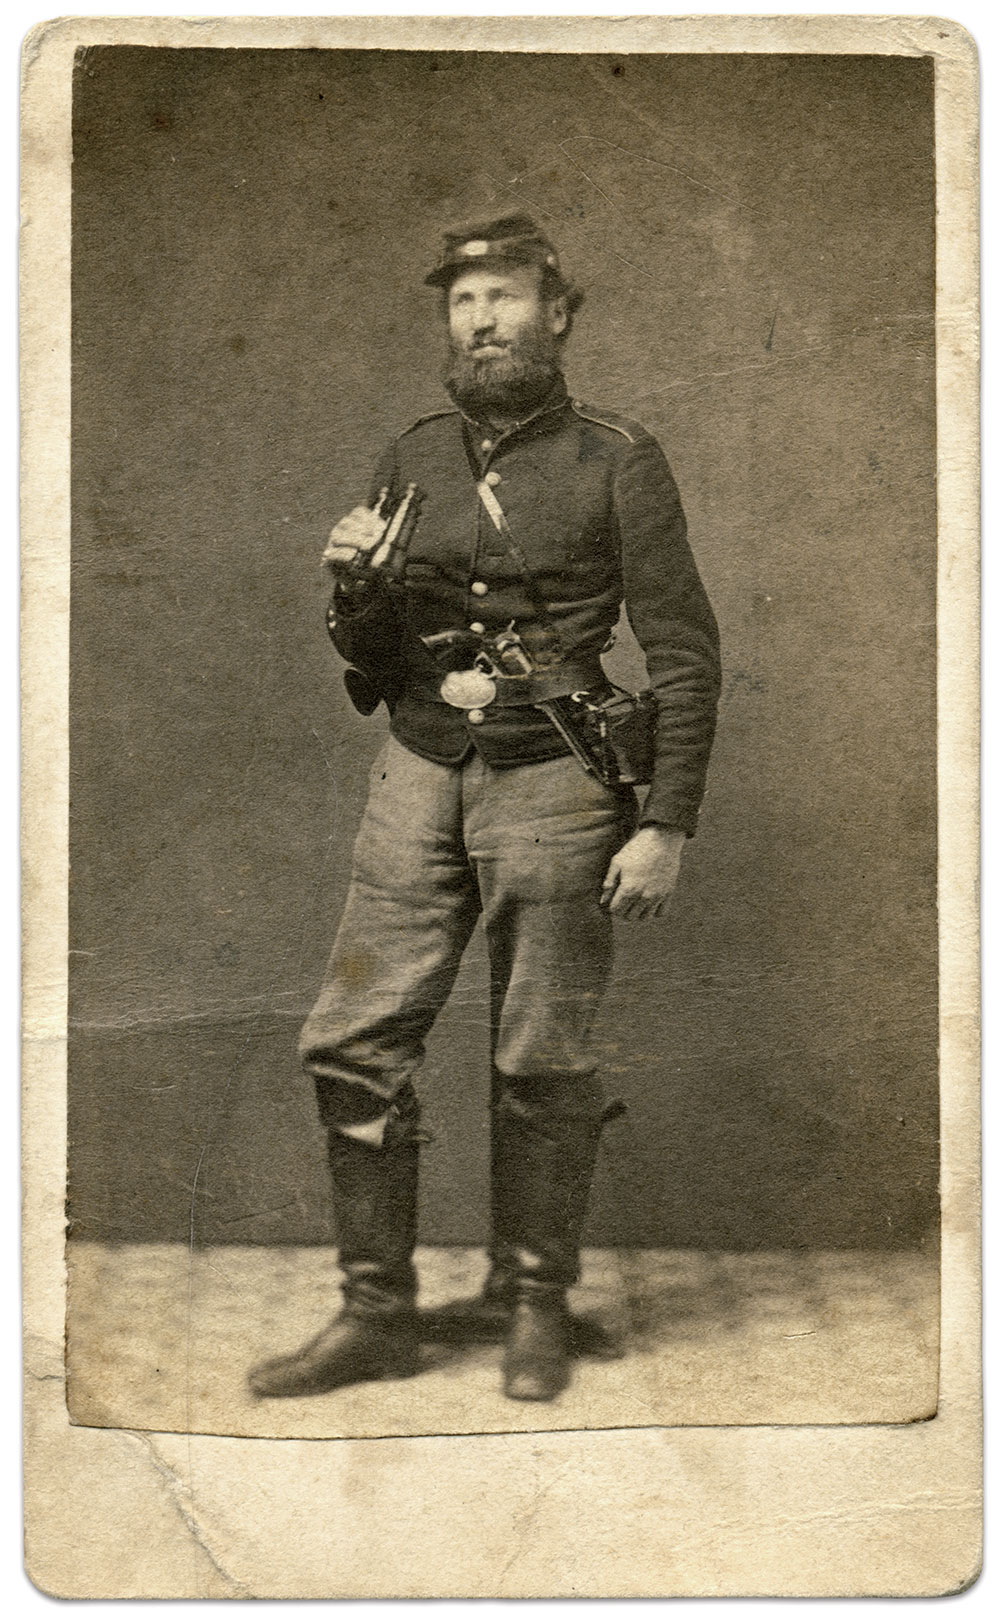 Carte de visite by the Army Photograph and Ambrotype Gallery at Upton's Hill. Rick Carlile Collection.